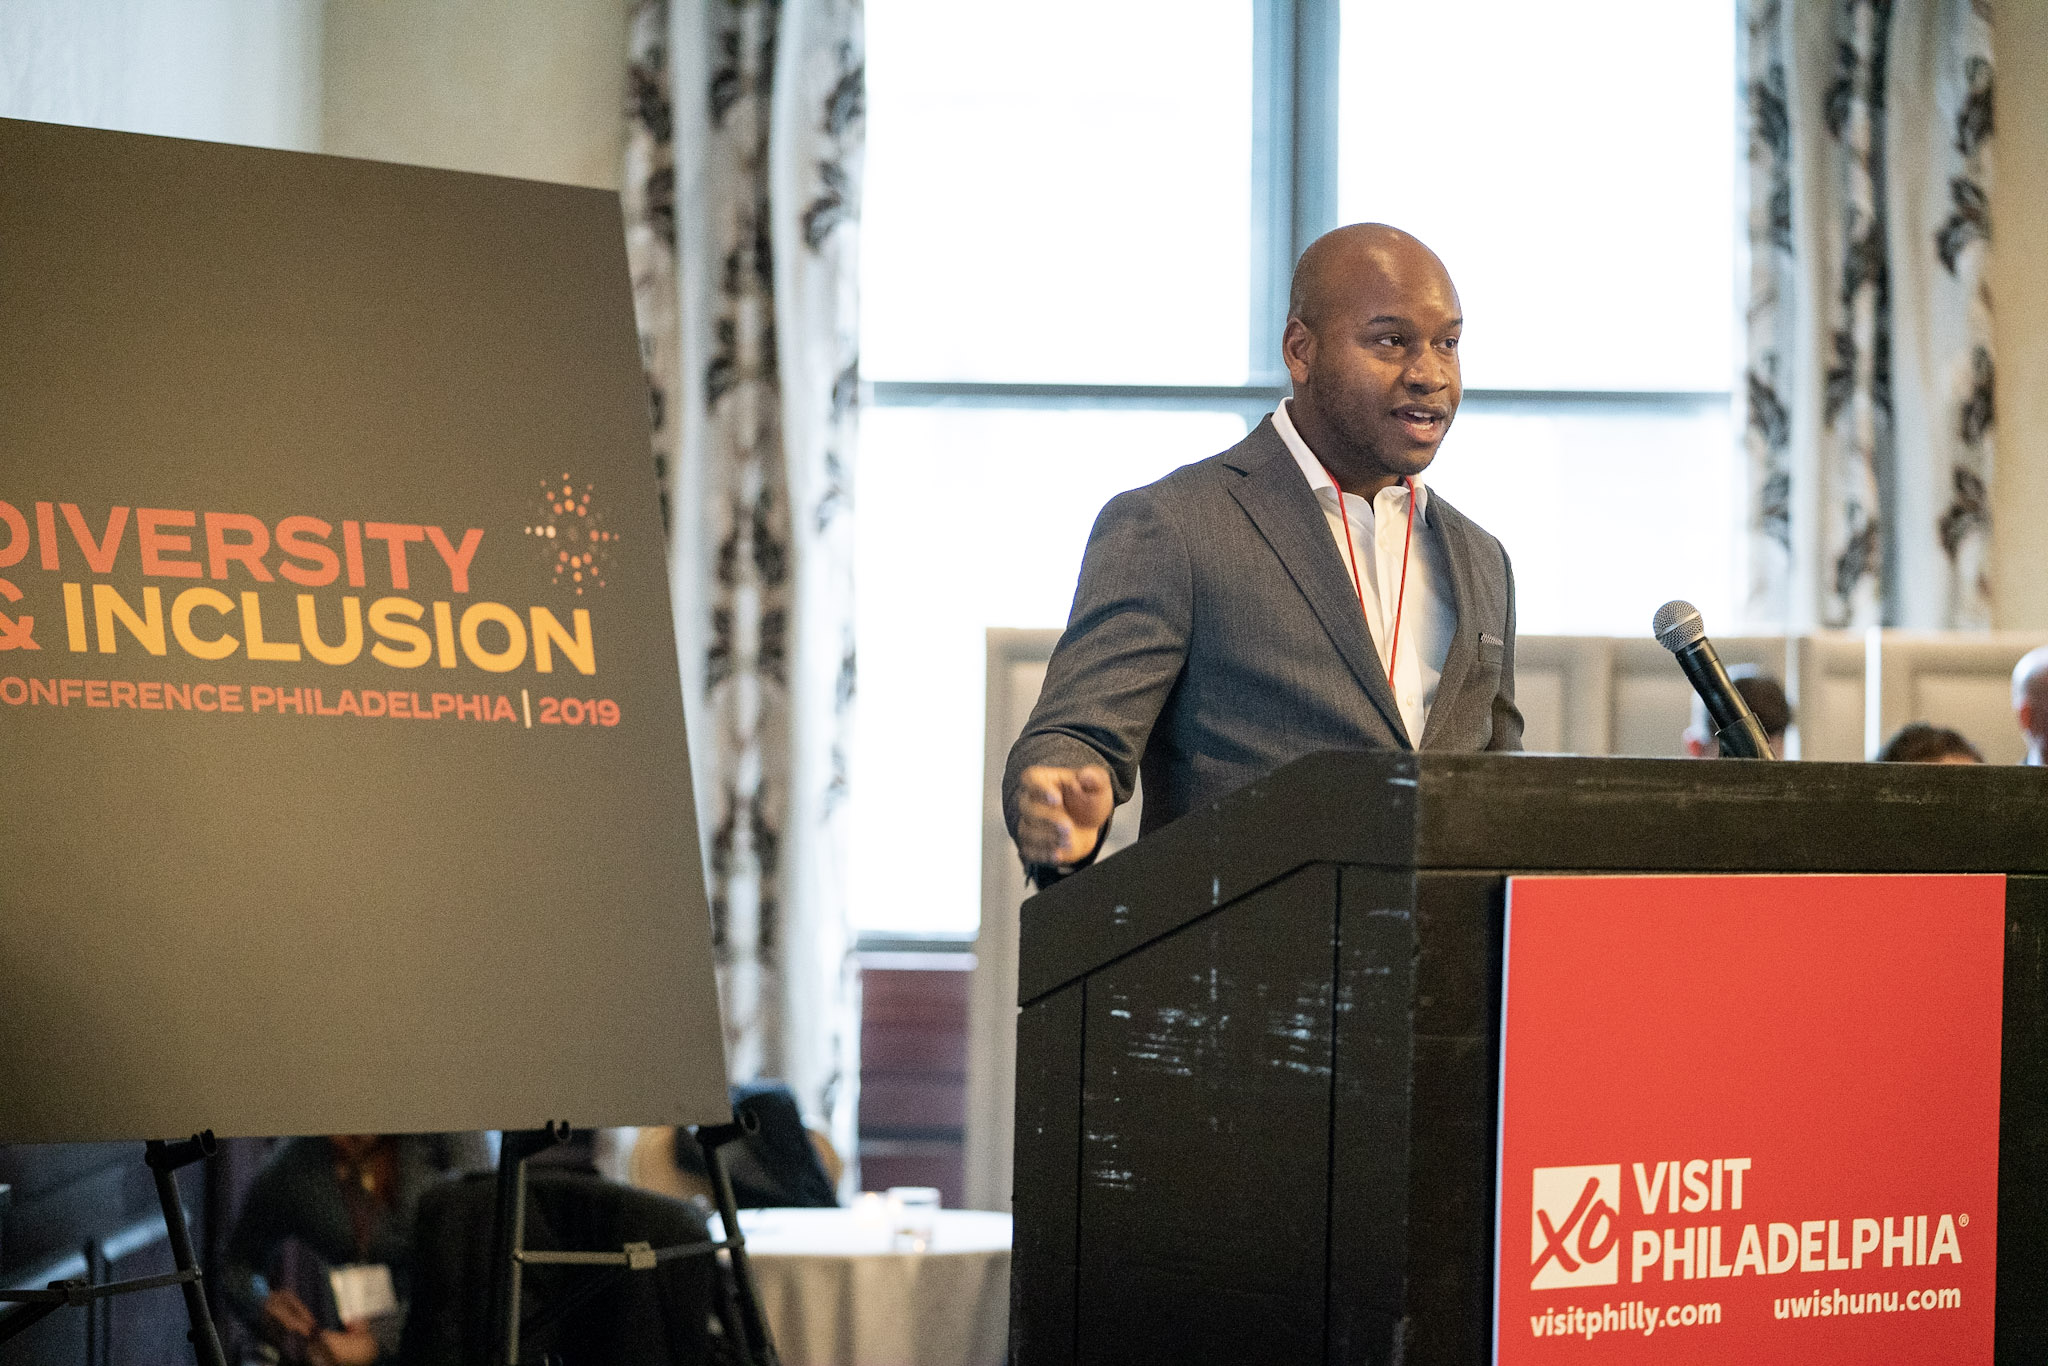 2019 Philadelphia Diversity & Inclusion Conference-106765-March 25, 2019101.jpg